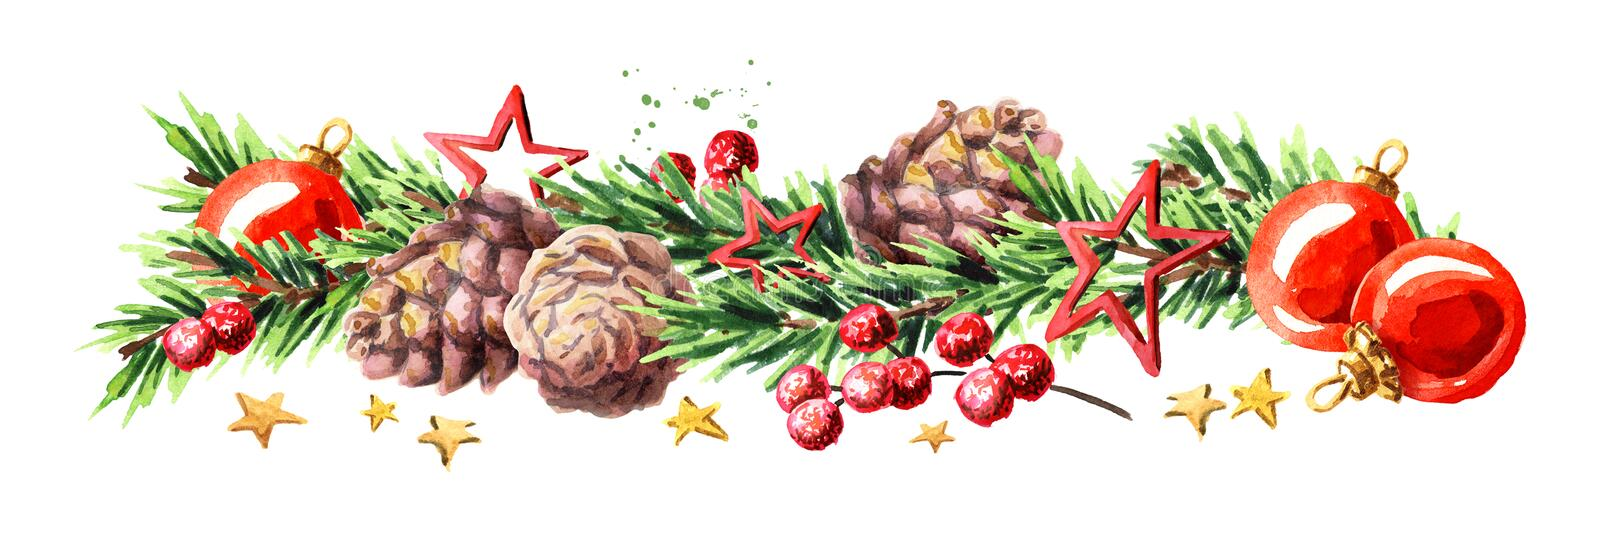 Christmas border with fir branches, red baubles, pine cones and stars. Watercolor hand drawn illustration, isolated on white backg stock illustration